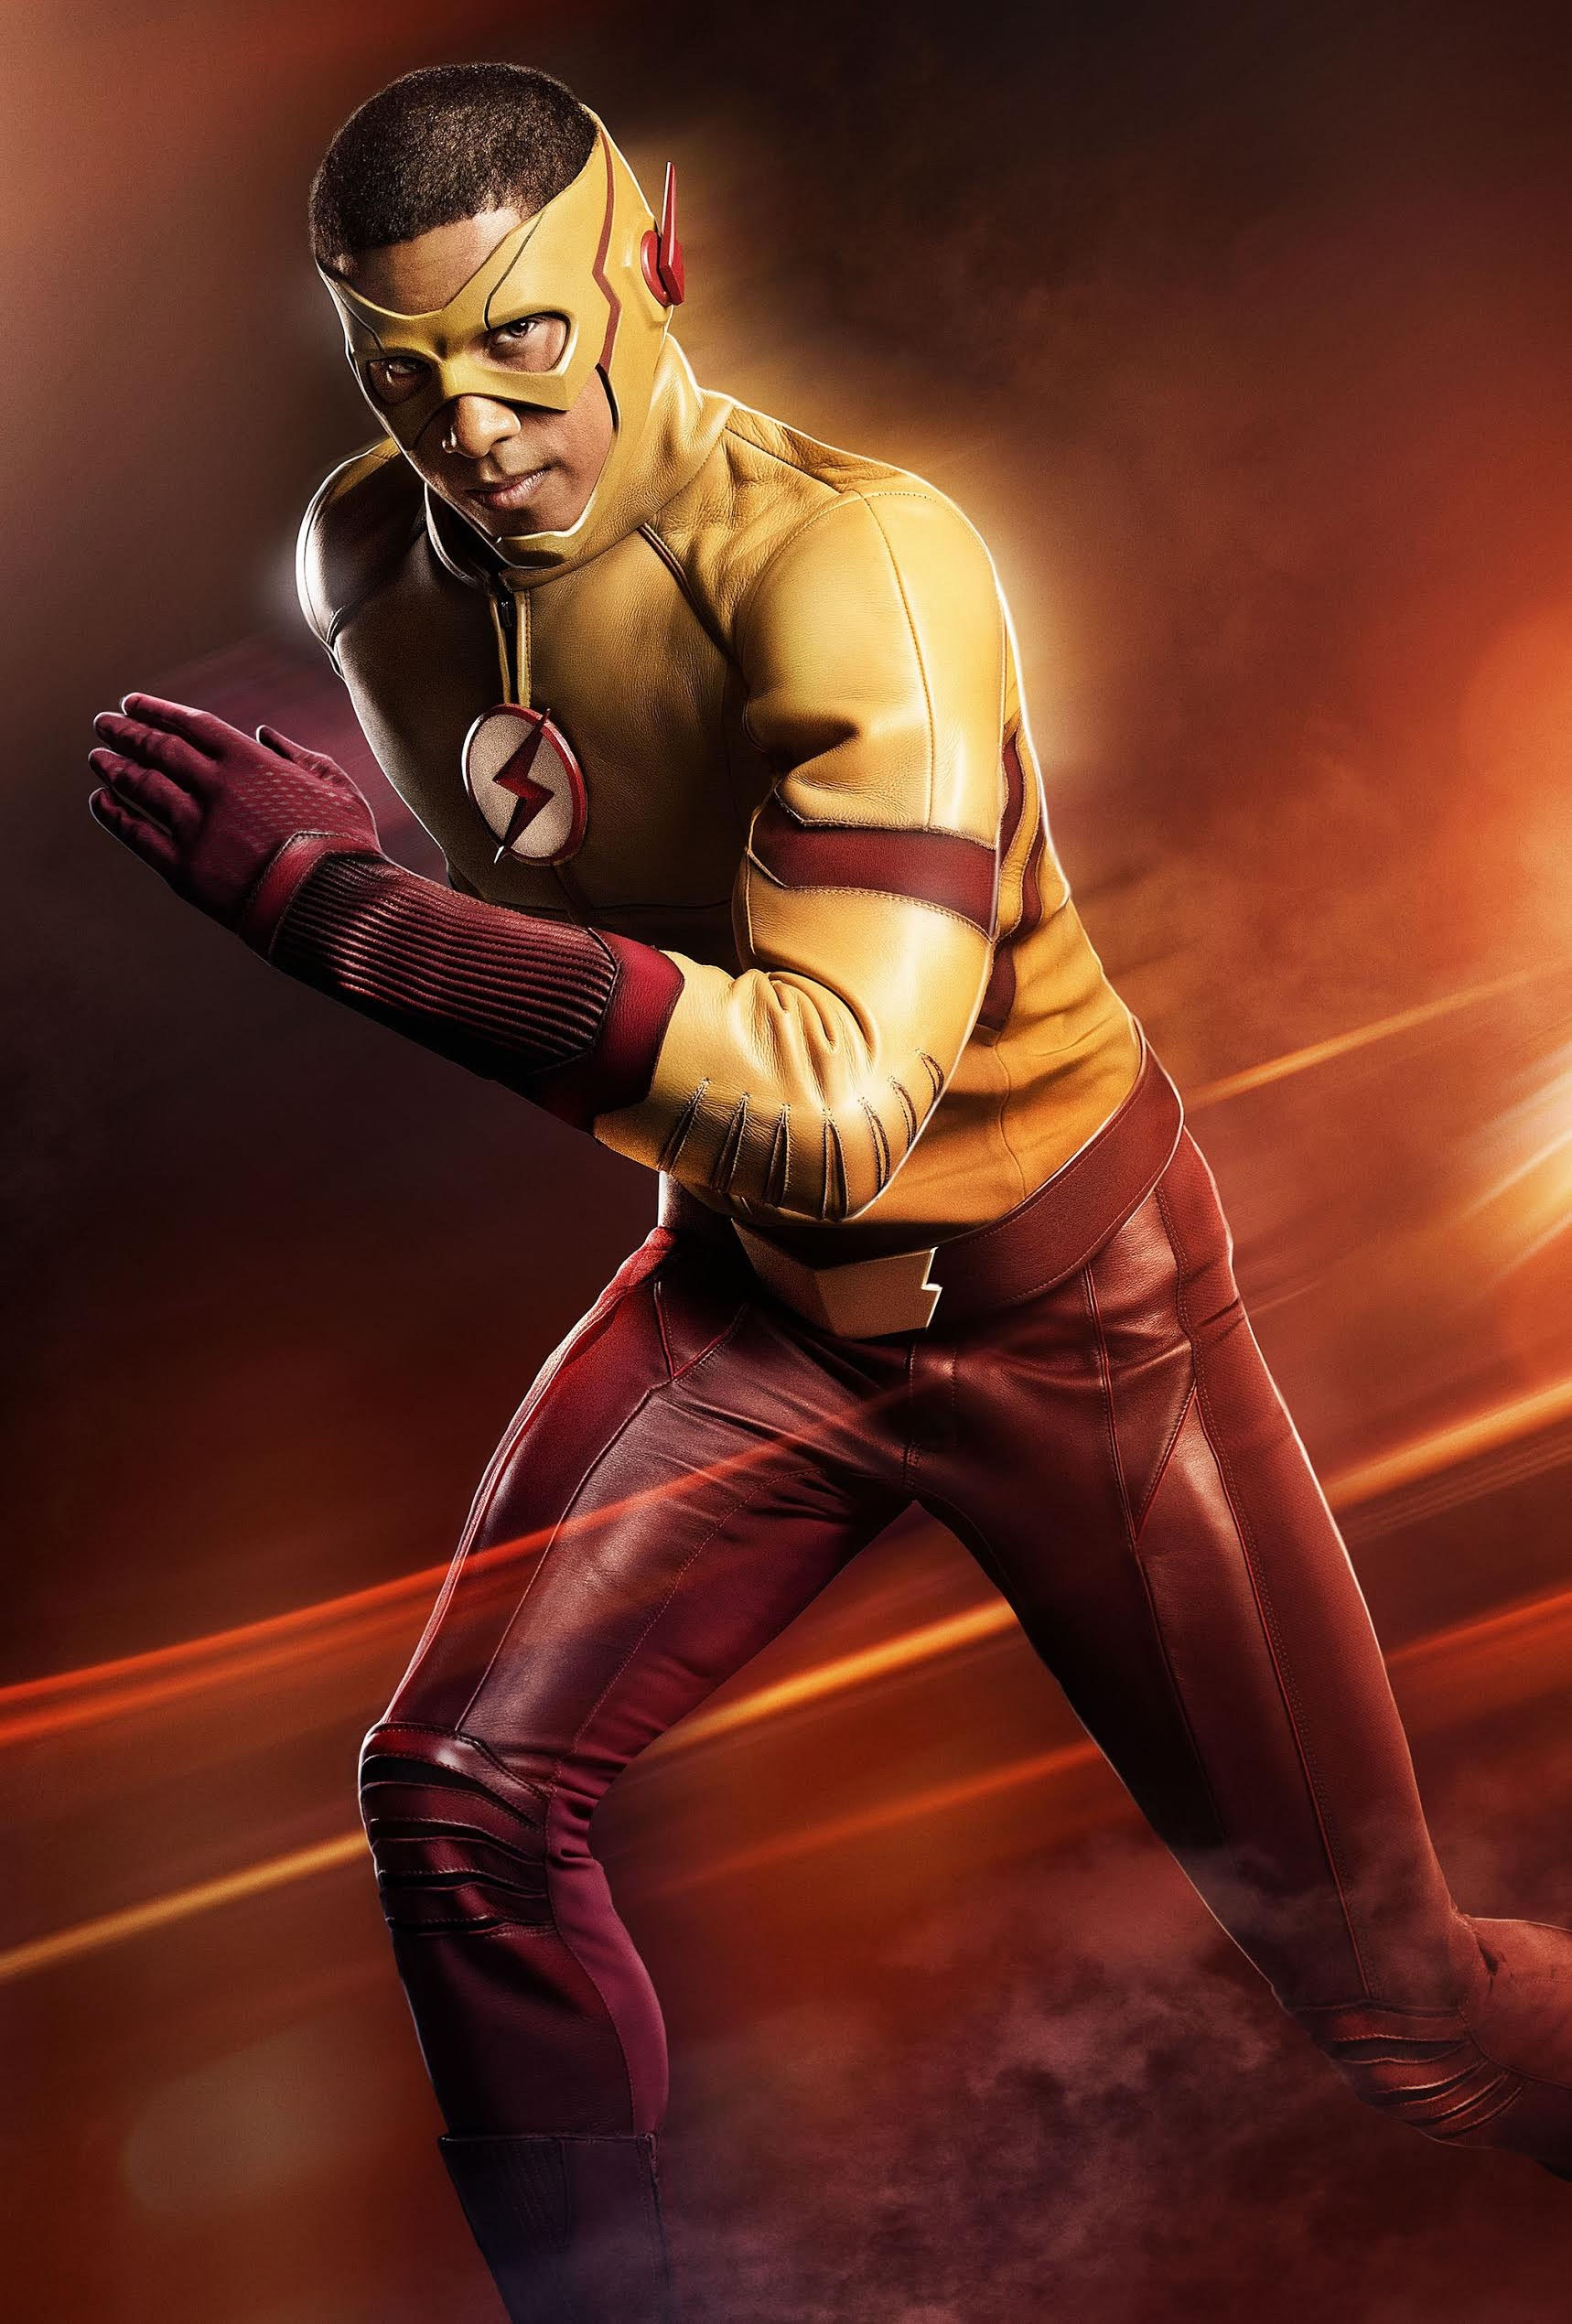 Kid Flash vai trocar de série para integrar Legends of Tomorrow